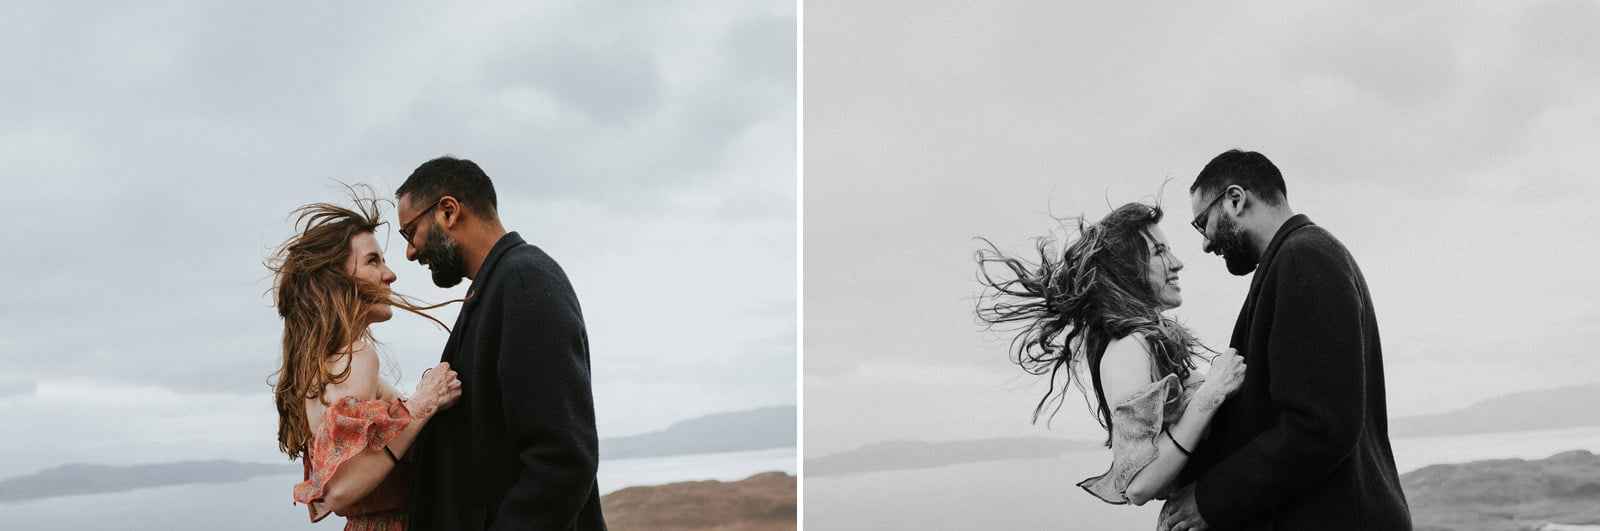 23-isle-of-skye-elopement-wedding-photographer